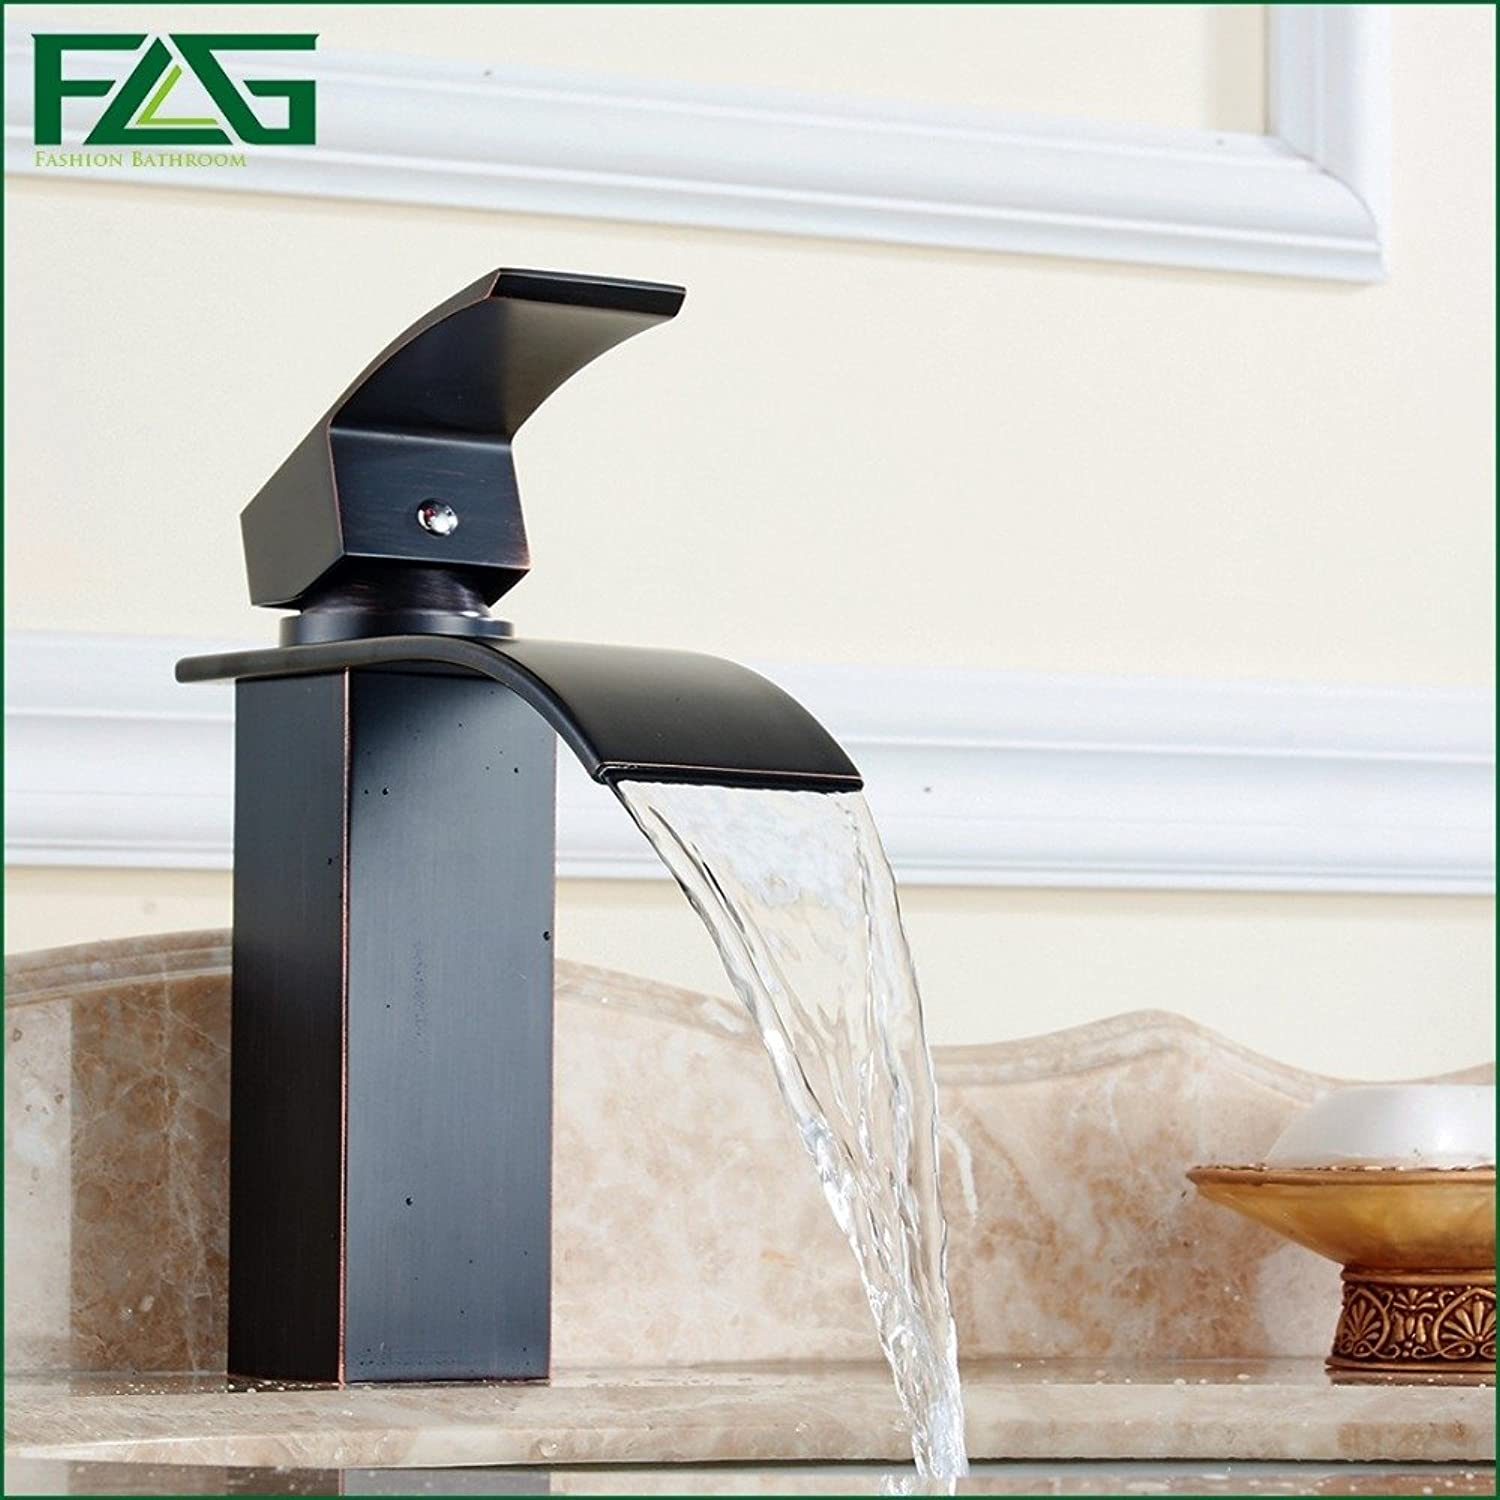 Electroplating Retro Faucet Electroplating Retro Faucet FLG Basin Faucet Square Waterfall Oil Rubbed Bronze Sink Faucet Vessel Faucet Griferia Lavabo Bathroom Basin Sink Taps M221O,nickel